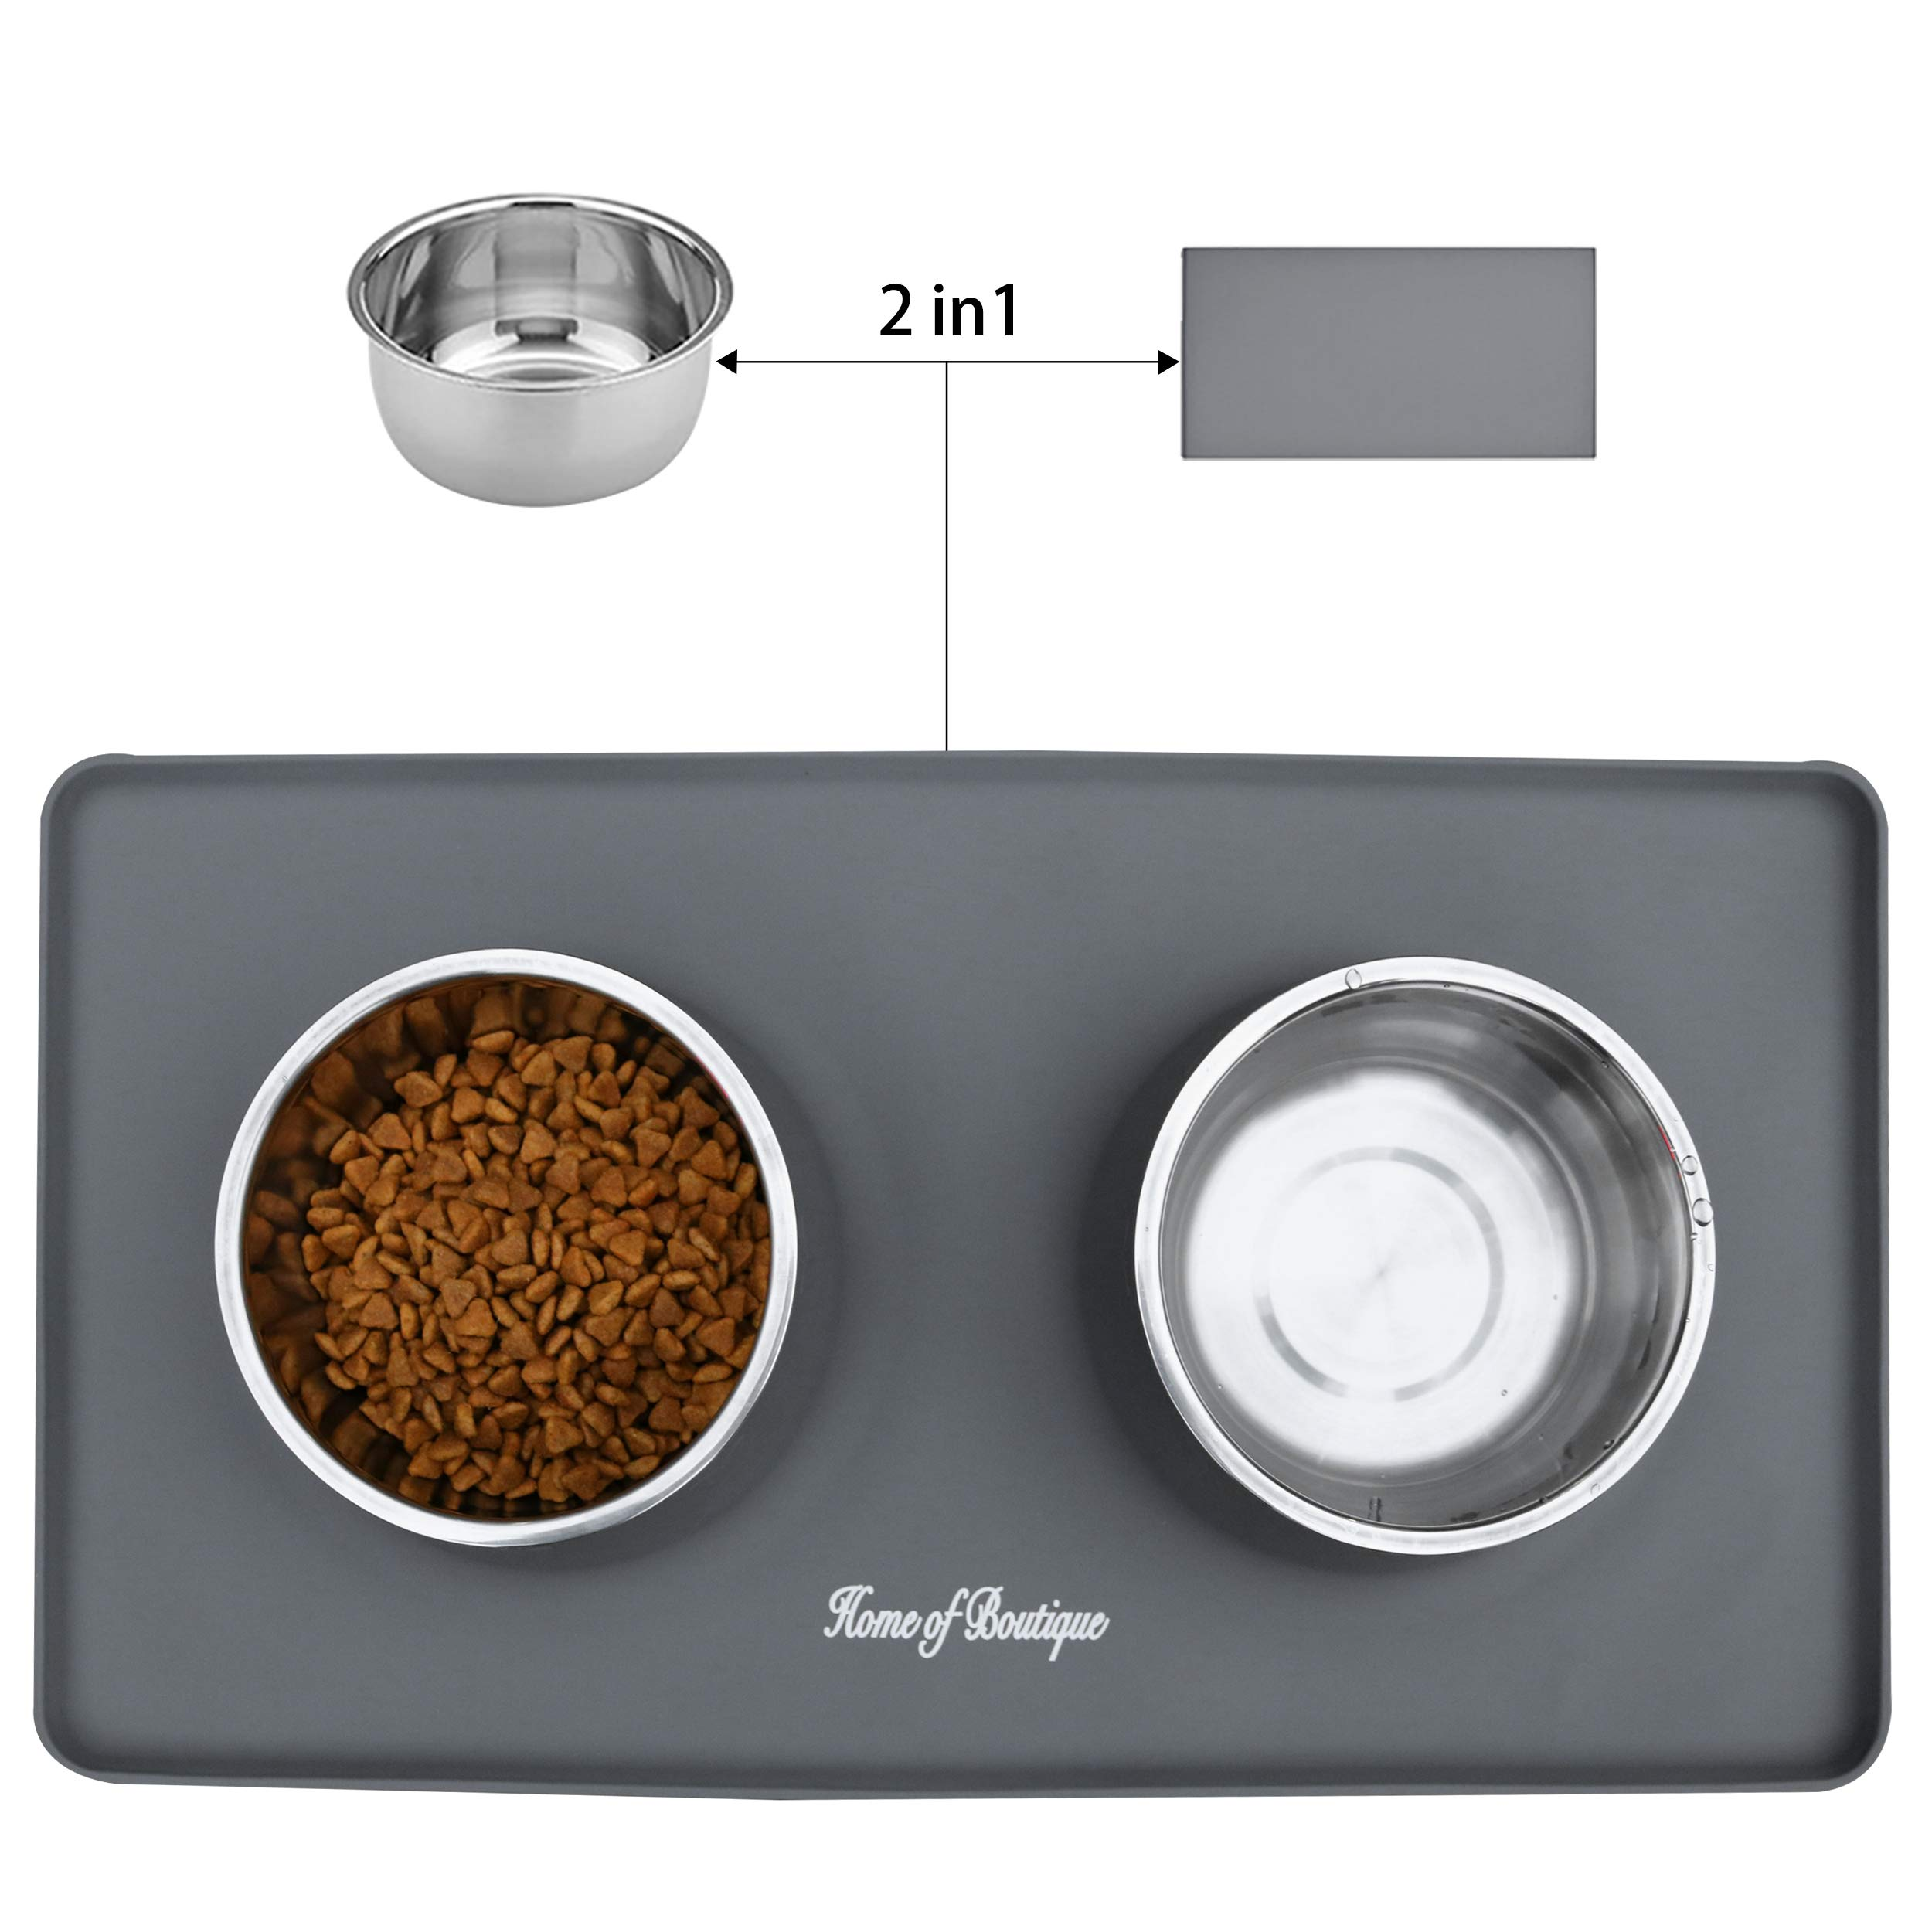 Dog Bowls, Cat Food and Water Bowl Stainless Steel, Pet Comfort Feeding Bowls with No-Spill Anti-Slip Silicone Mat for Medium or Small Dogs or Cats, Set of 2 Bowls (M, Gray)